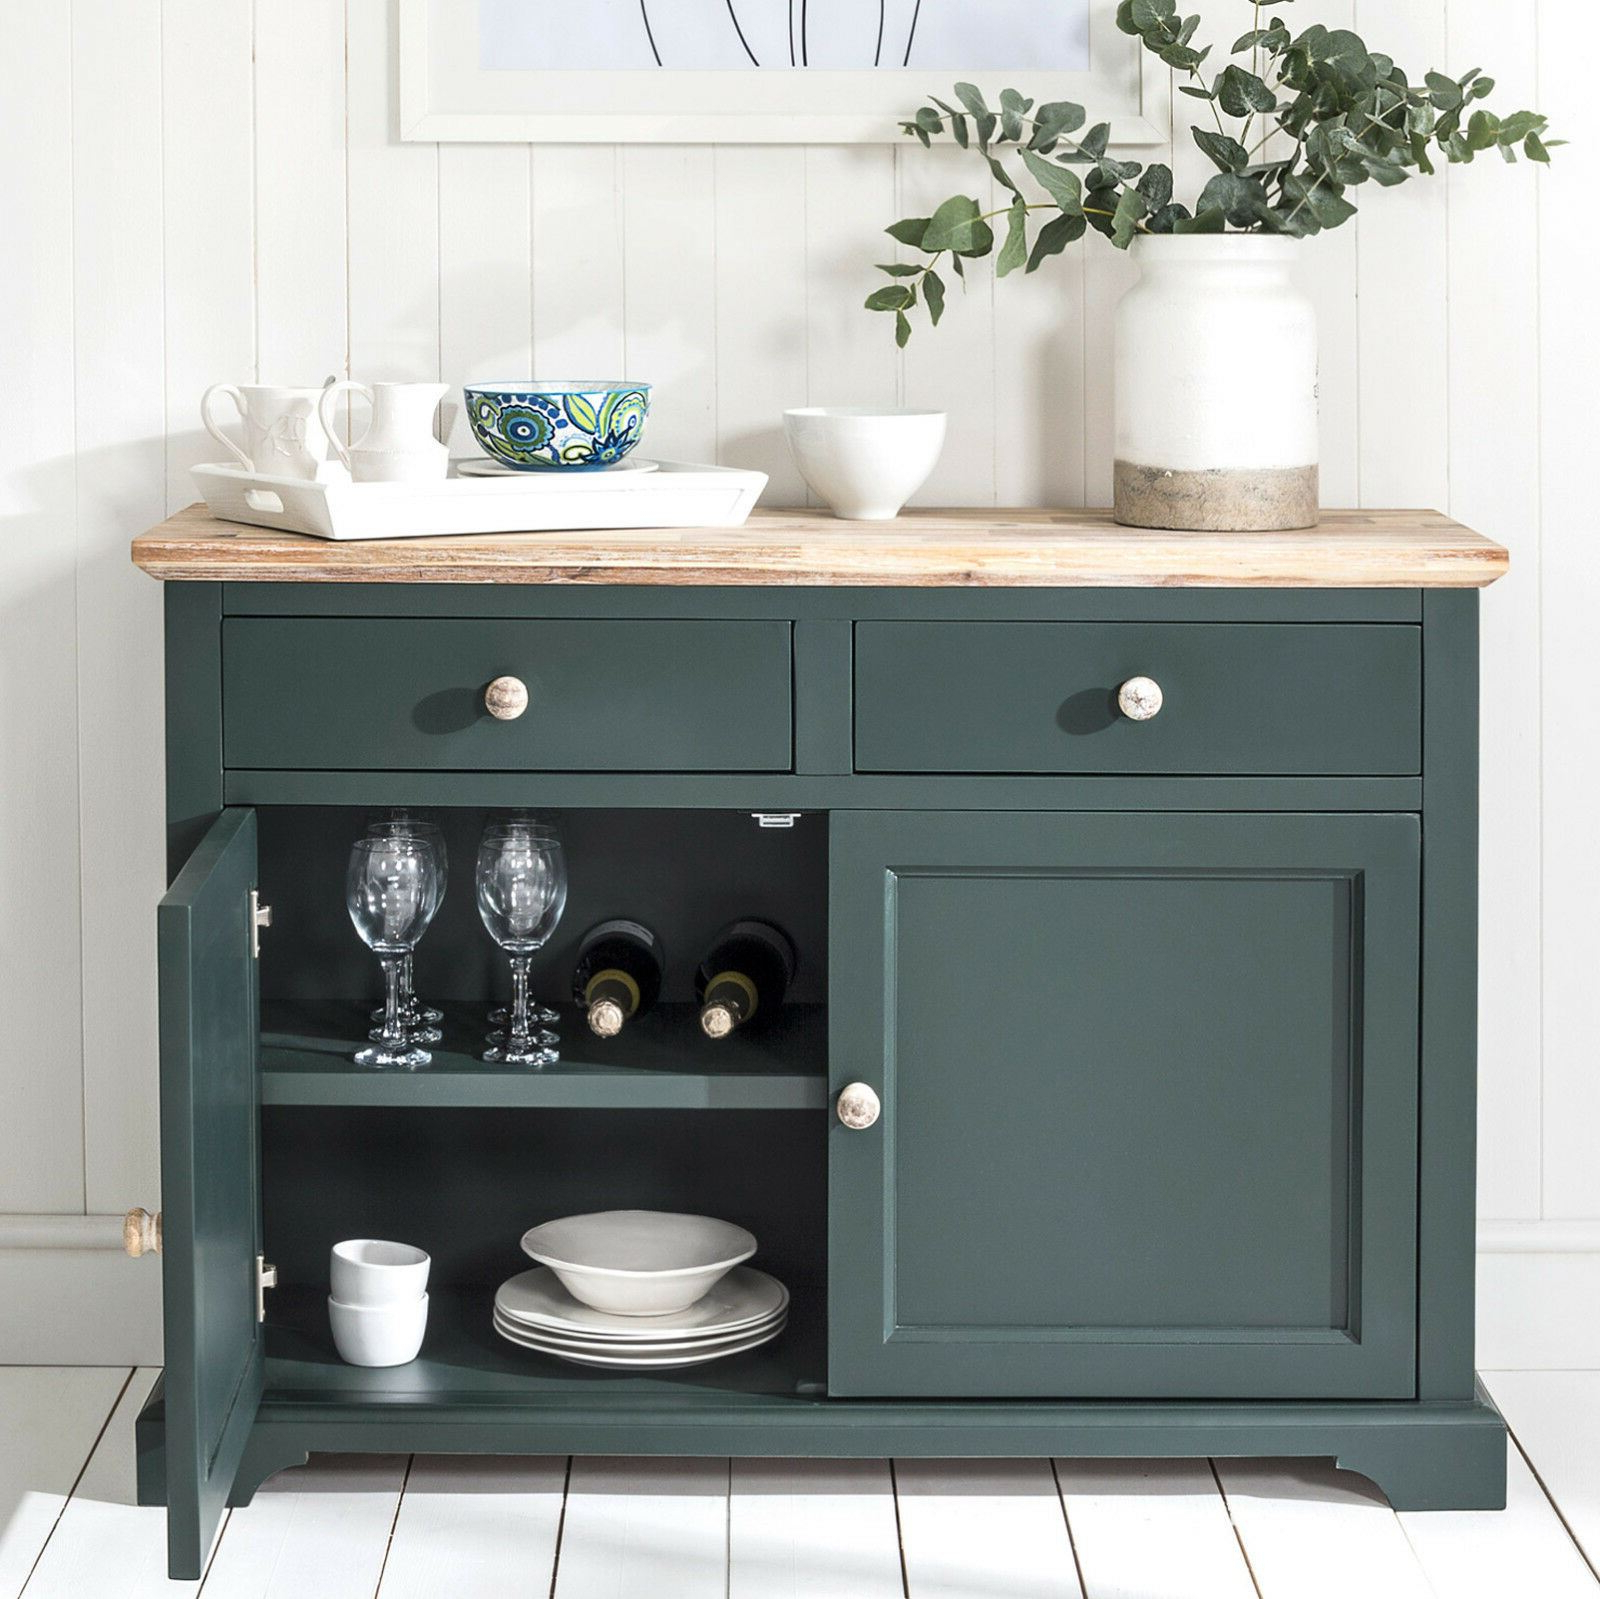 """Widely Used Frida 71"""" Wide 2 Drawer Sideboards With Regard To Florence Sideboard, Kitchen Cupboard With 2 Drawers And  (View 11 of 20)"""